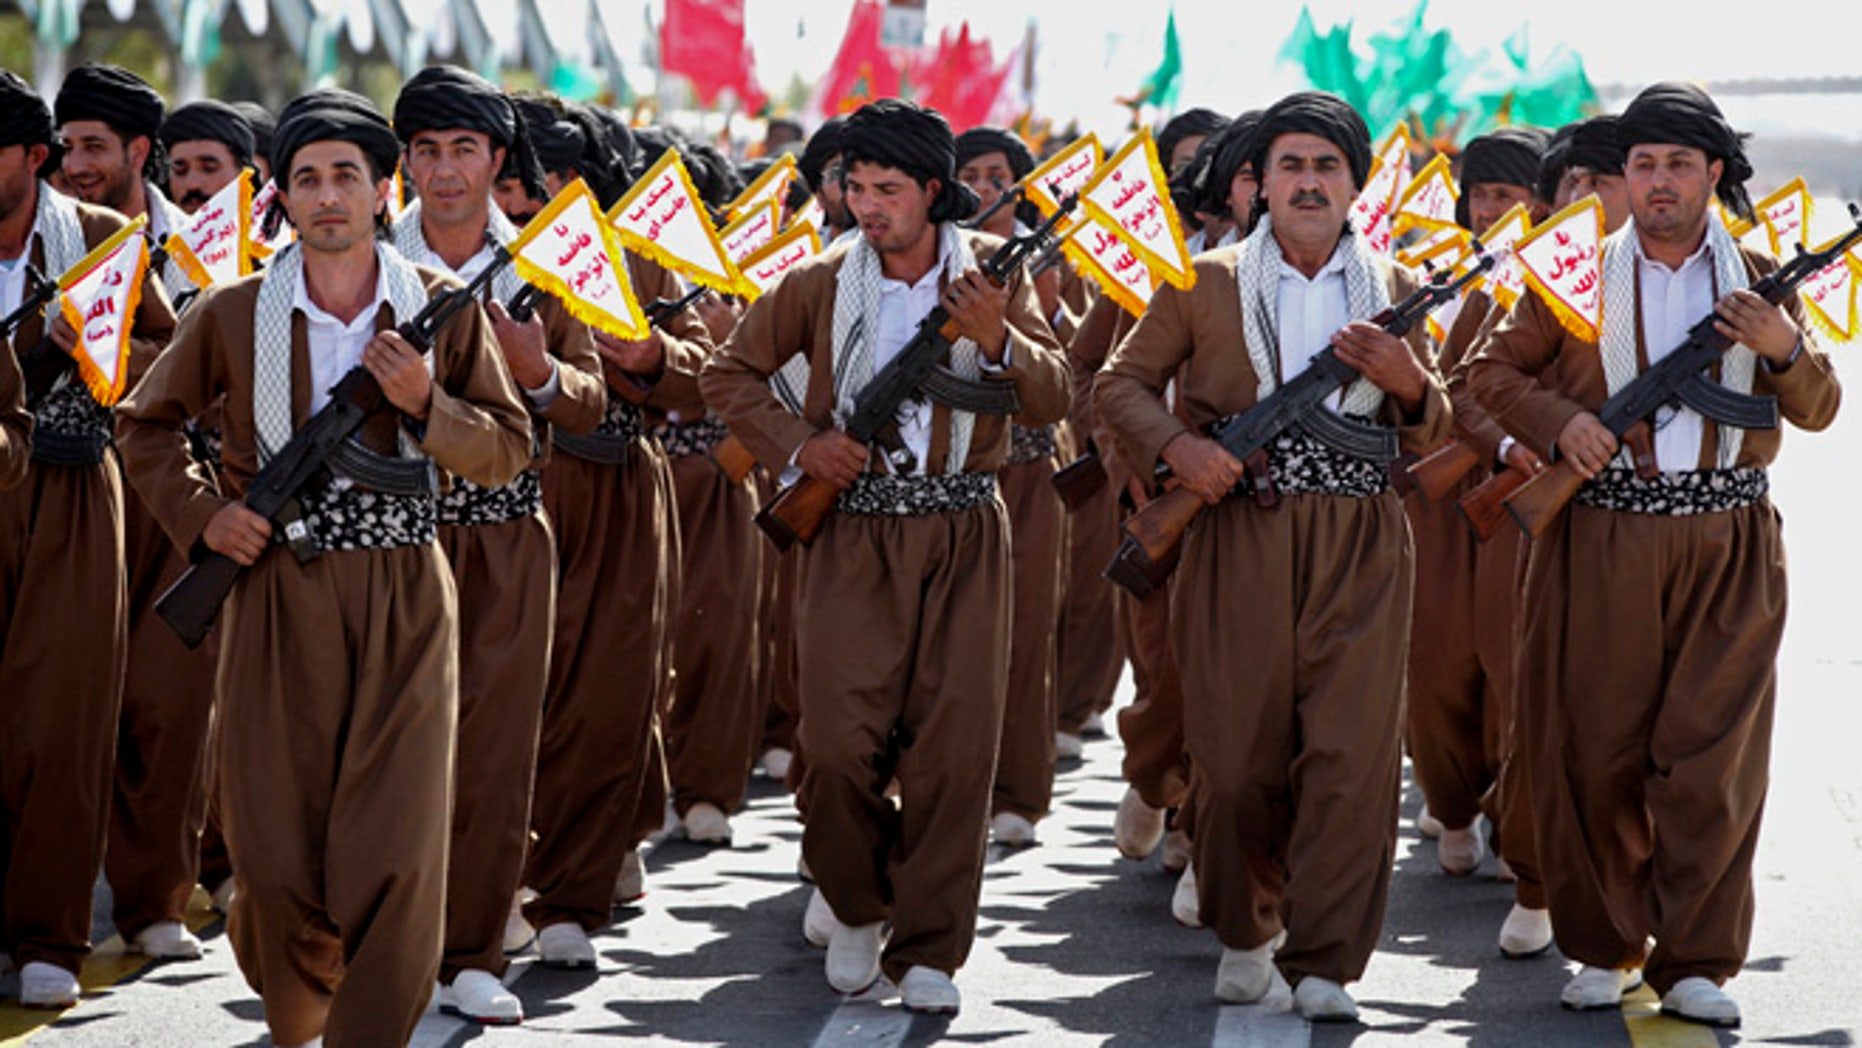 Sept, 22, 2013: Kurd volunteer members of Basij, the Revolutionary Guards paramilitary branch, march during an annual military parade in Tehran, Iran.